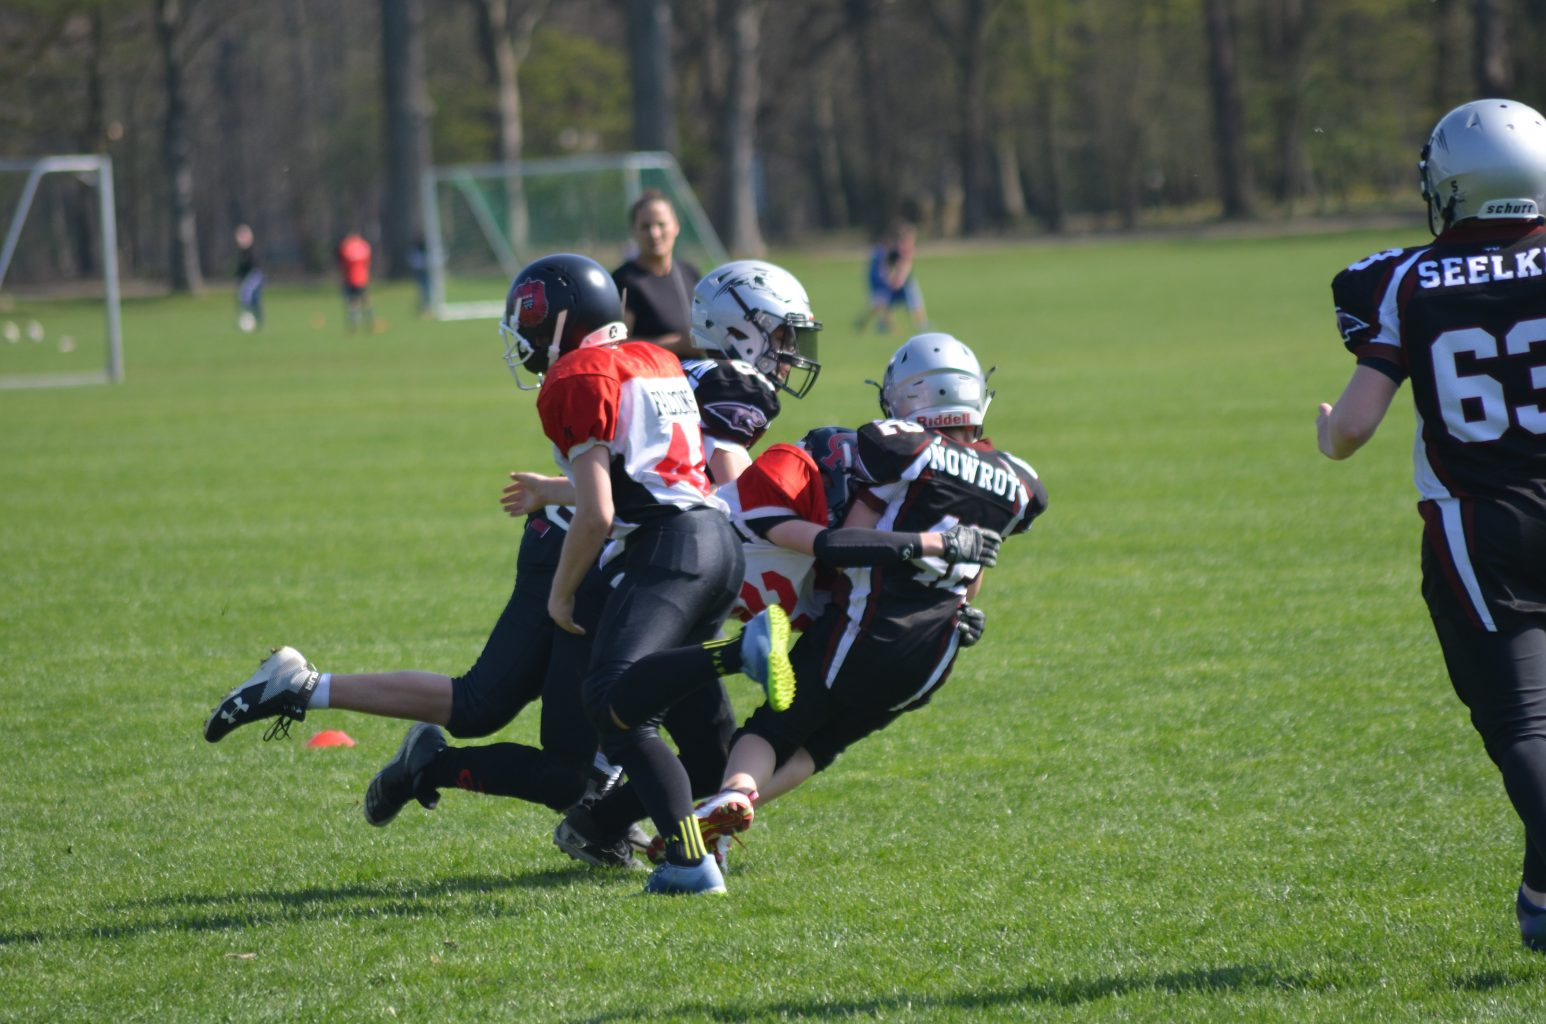 American Football bis 13 Jahre